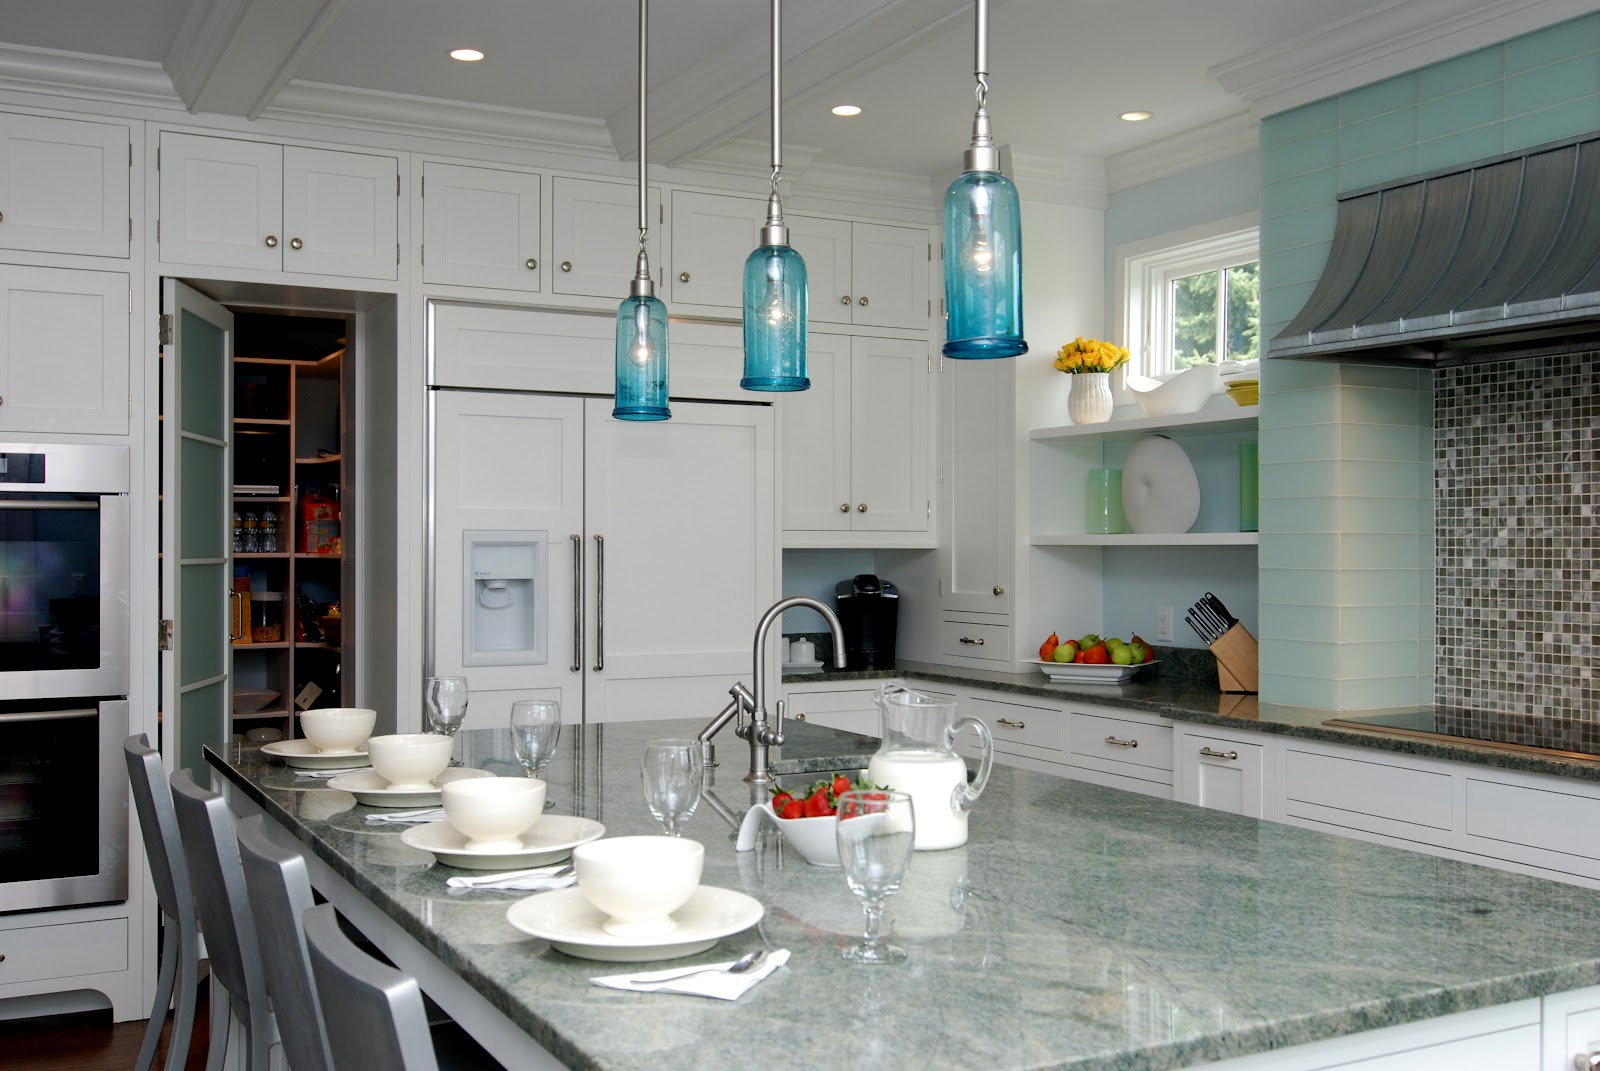 Turquoise pendant lighting lightingaqua pendant light nz blue large turquoise pendant lighting countertops which type is best for your kitchen turquoise pendant aloadofball Gallery